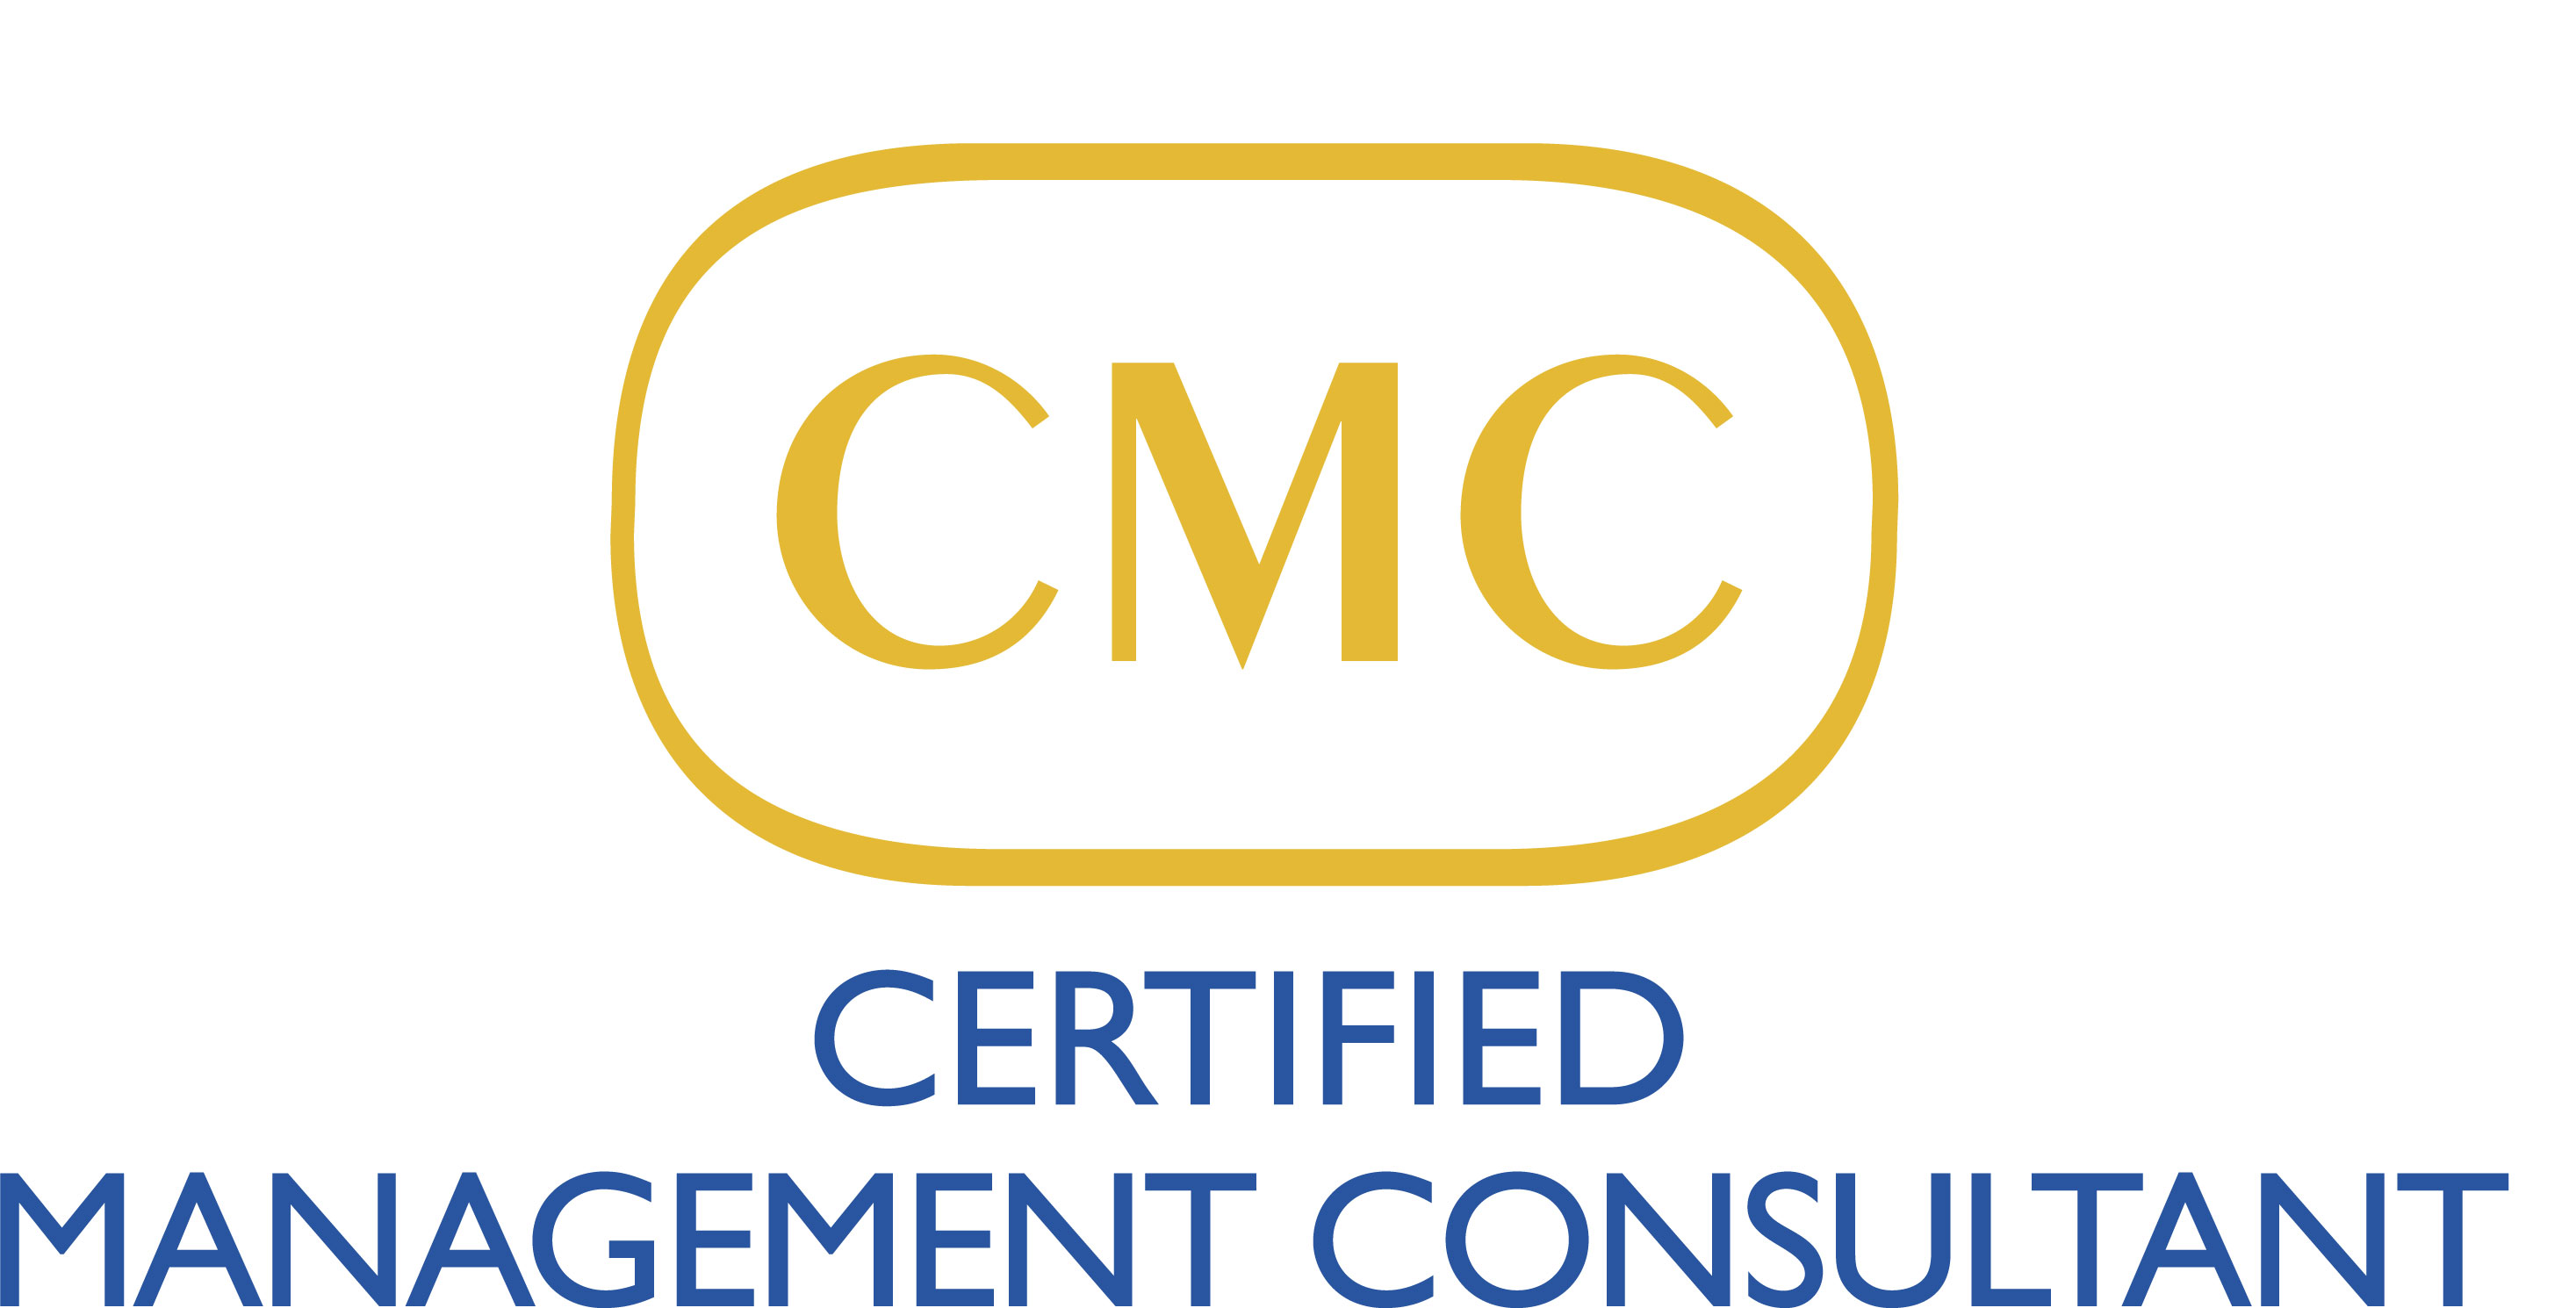 IMC USA Certified Management Consultant